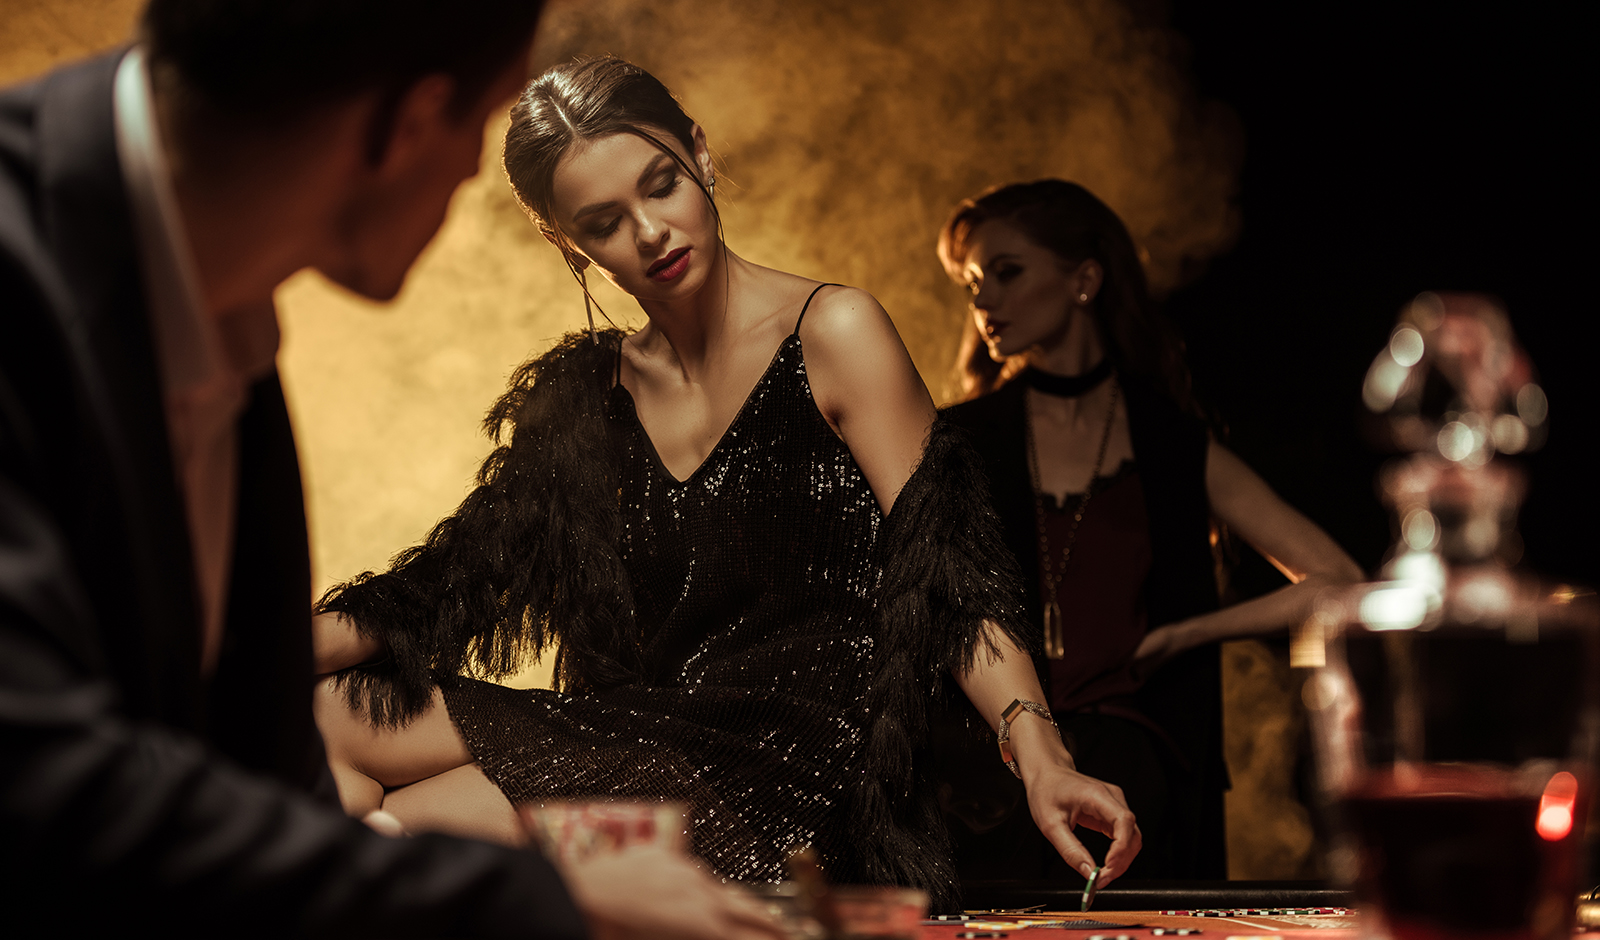 luxurious-destinations-for-casino-experience-beautiful-woman-in-luxury-casino